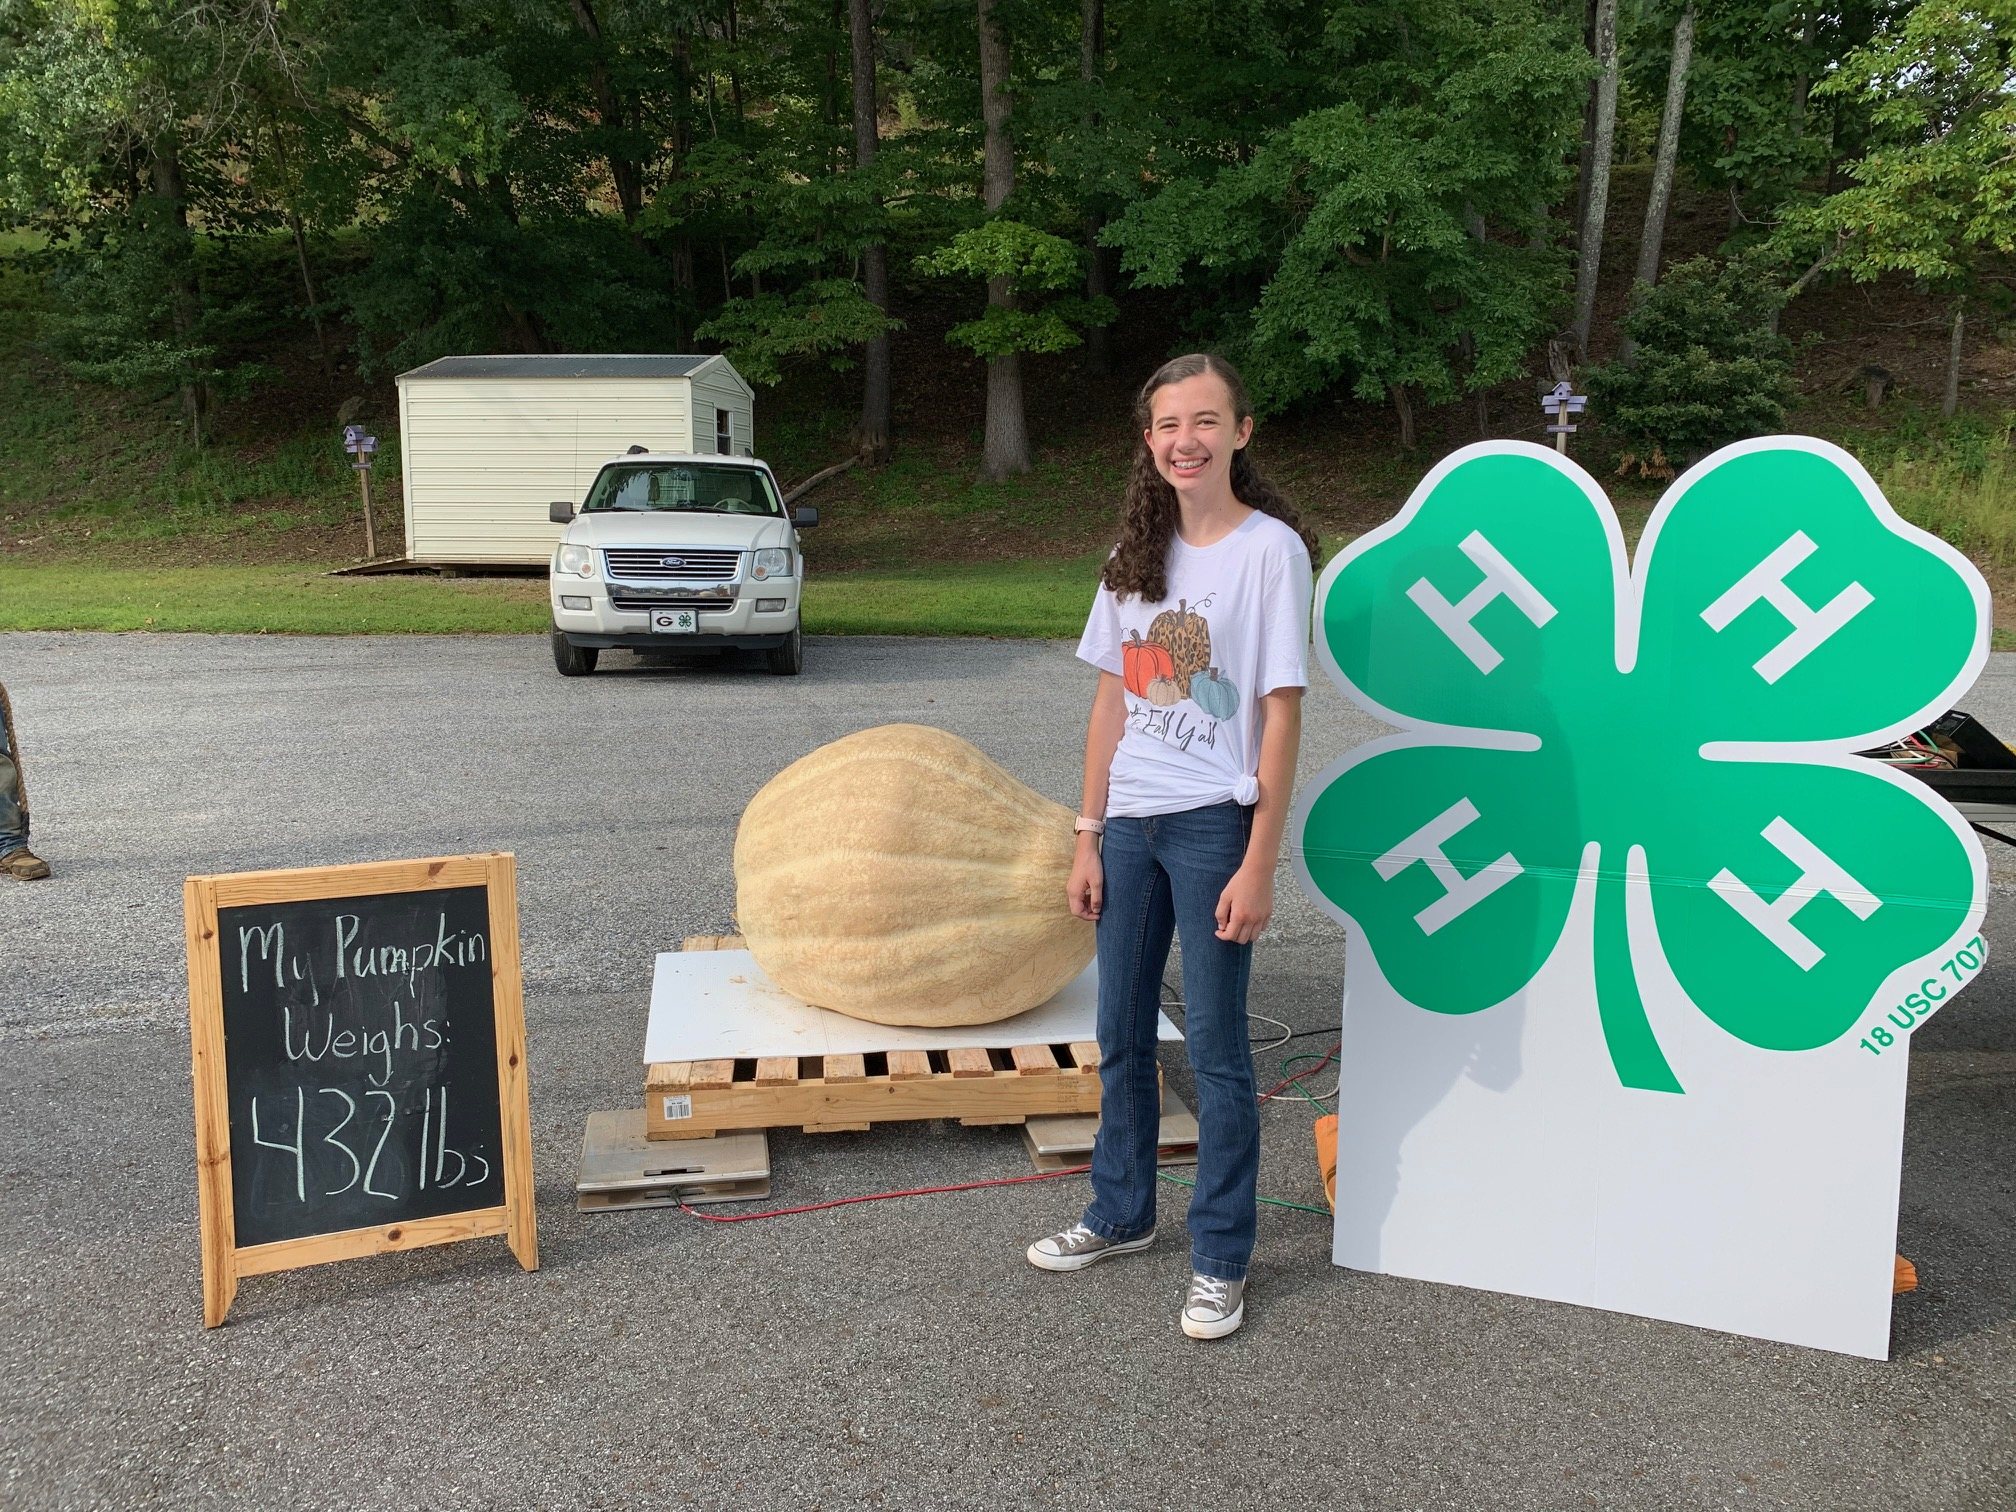 Natalie Payne of Union County had the second-place pumpkin, weighing 432 pounds.